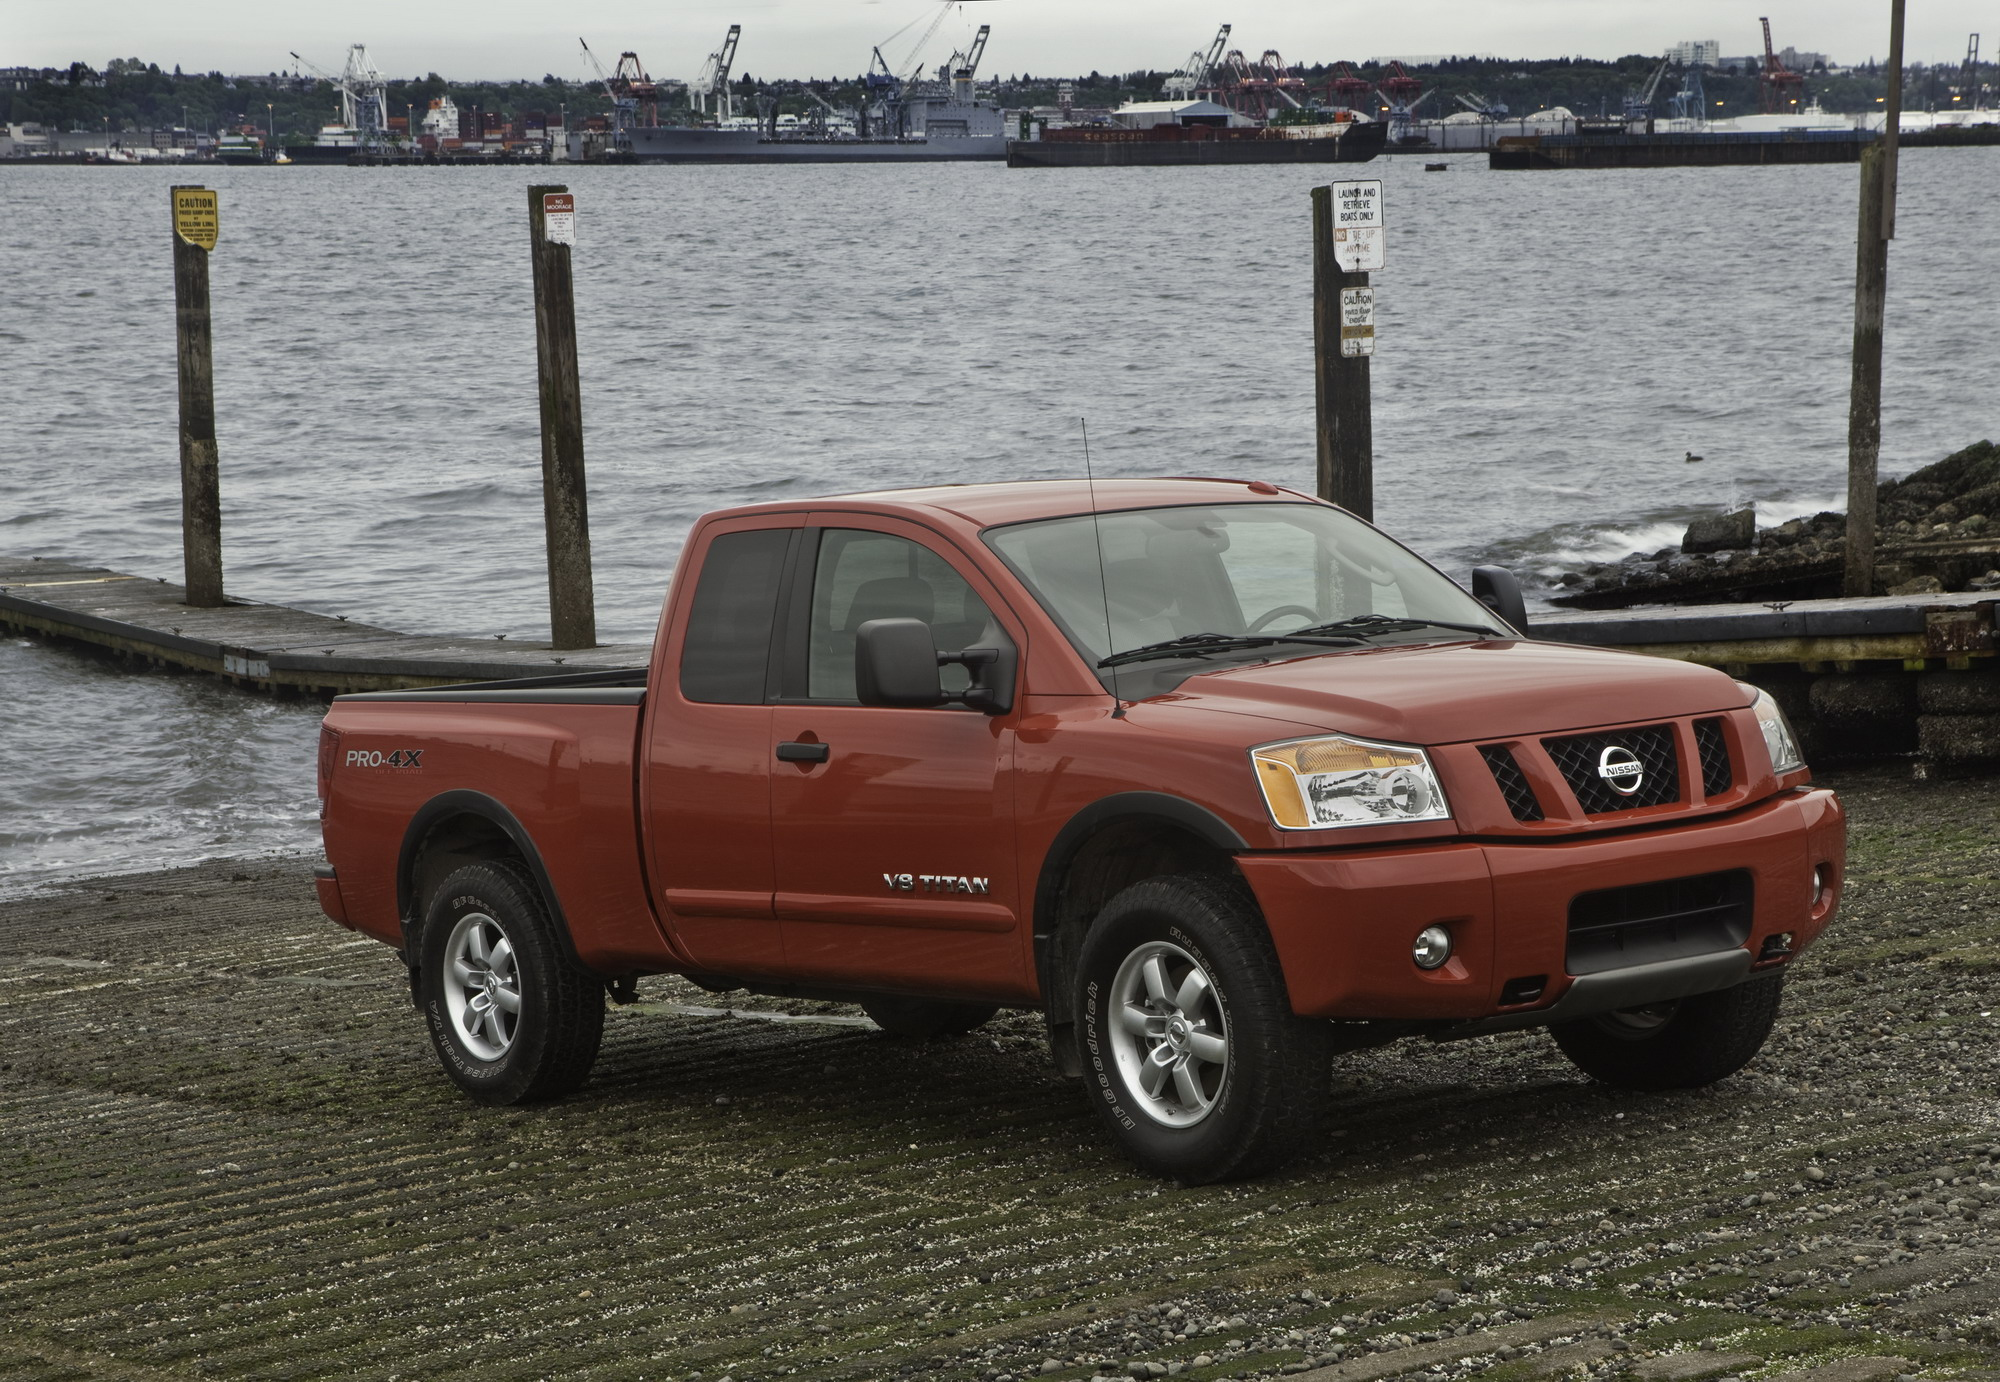 top cars frontier nissan models review truck speed